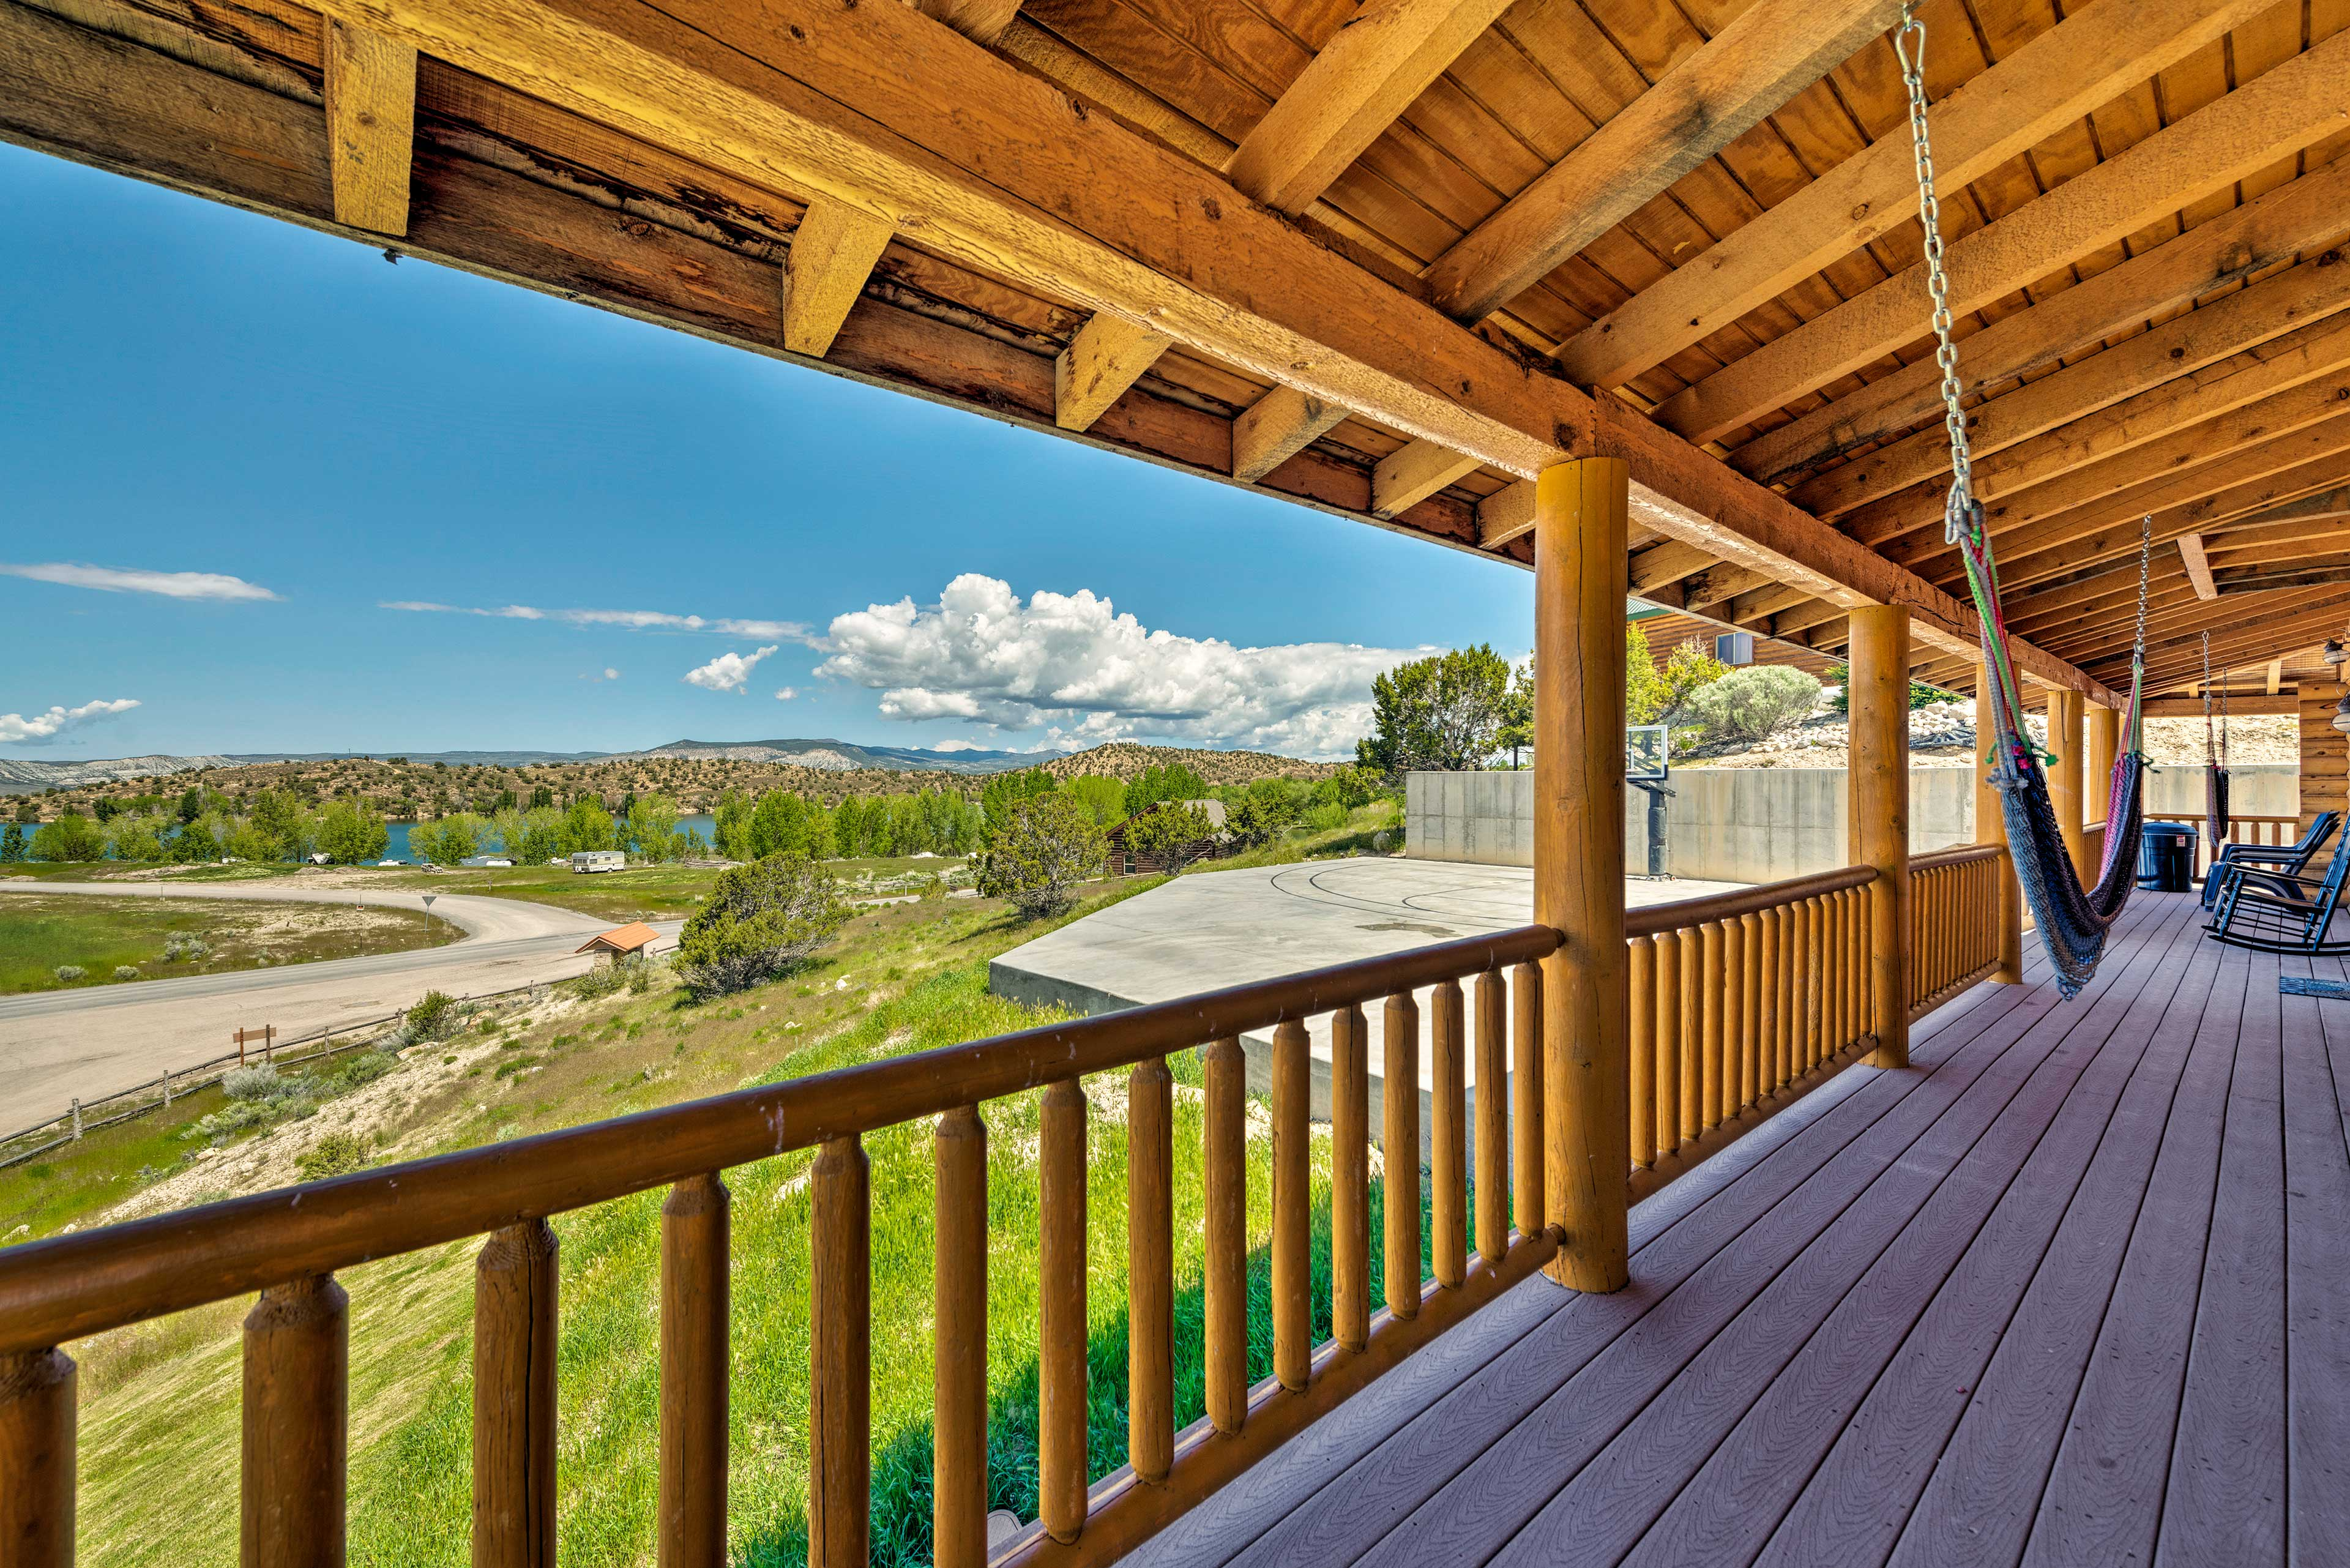 Savor downtime on the front porch, which features spectacular views.